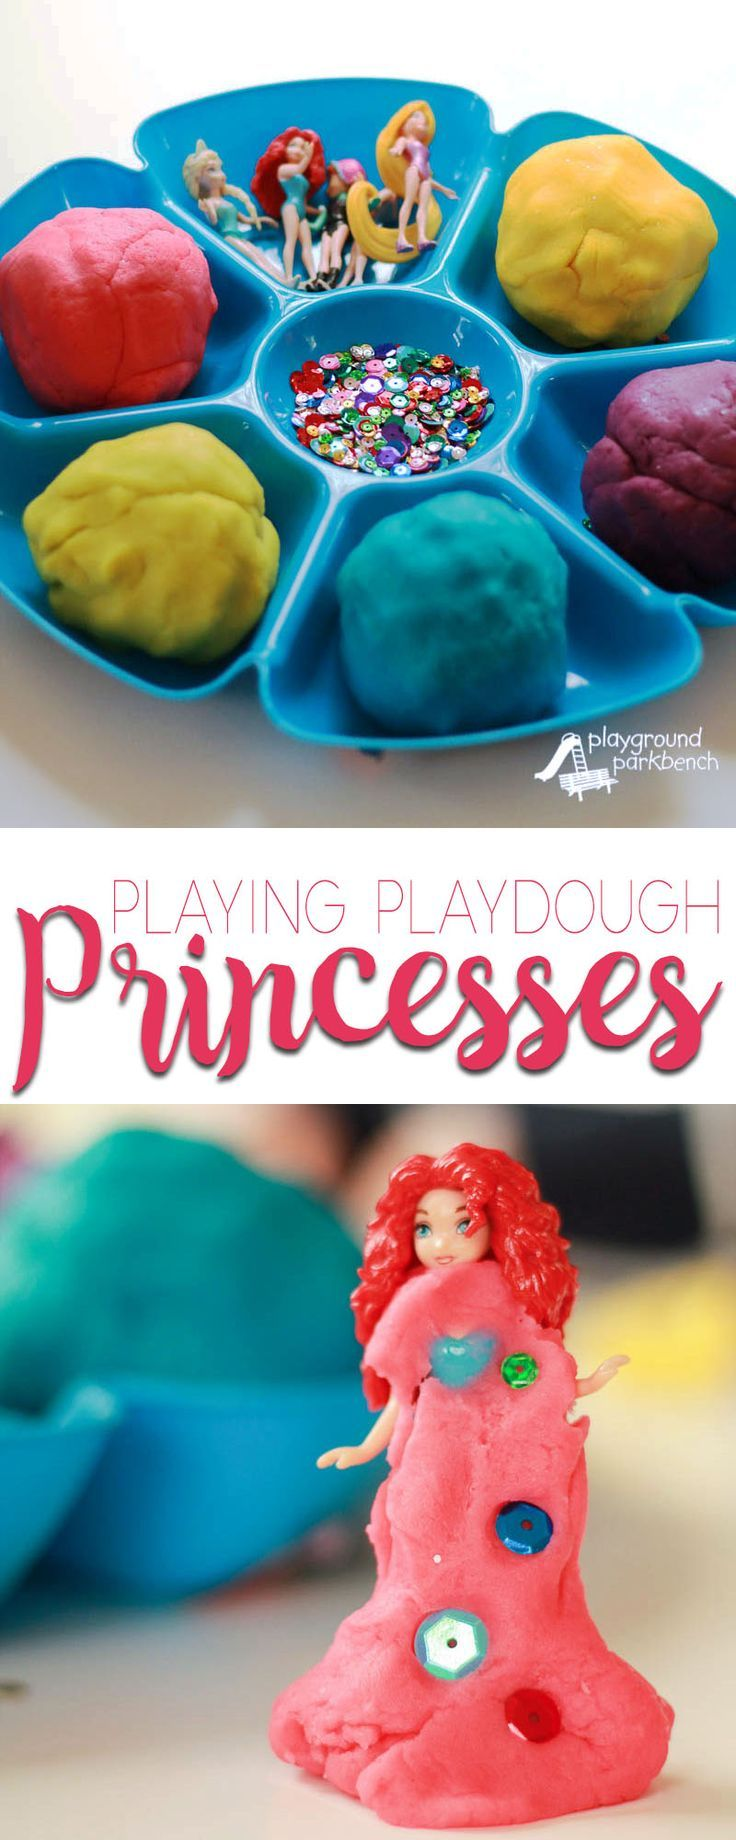 Do your kids love to watch the Disney Collector on YouTube? Tear them away from the screen and let them inspire and imagine Playdough Princesses creations of their very own! It will occupy them for hours, and costs next to nothing using the toys you already have and homemade playdough! | Dramatic Play | Imaginative Play | Sensory Play | Learning through Play | Disney Princess |